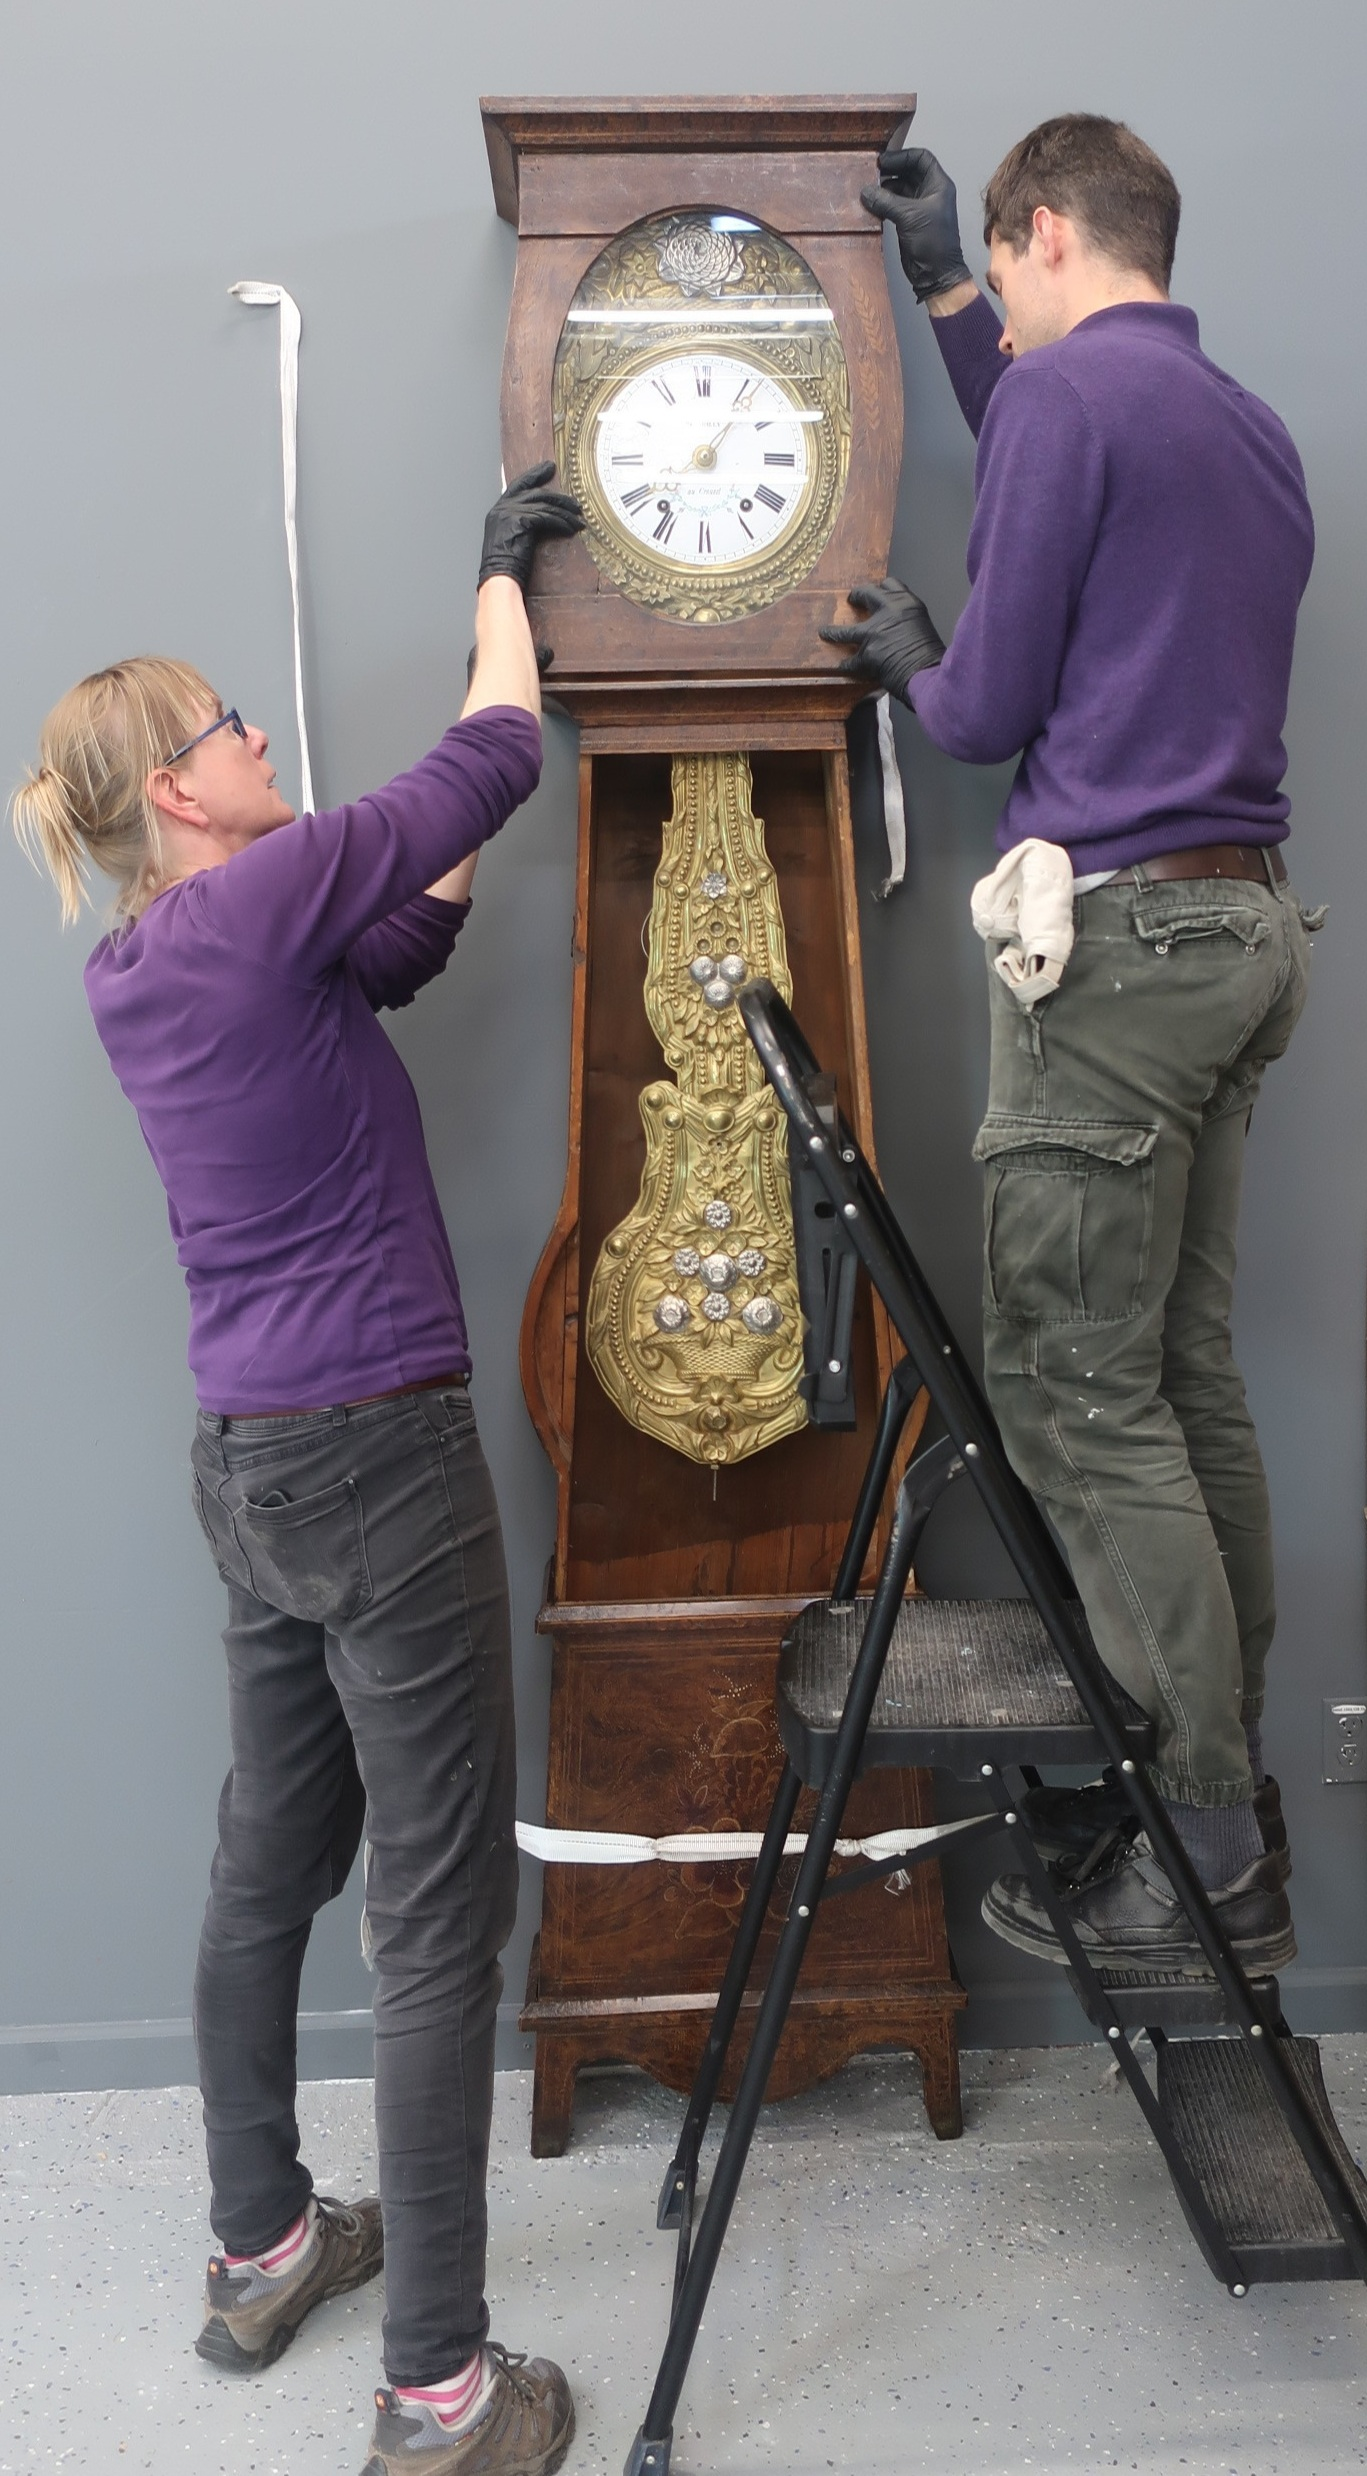 Team works together on an antique handmade grandfather clock